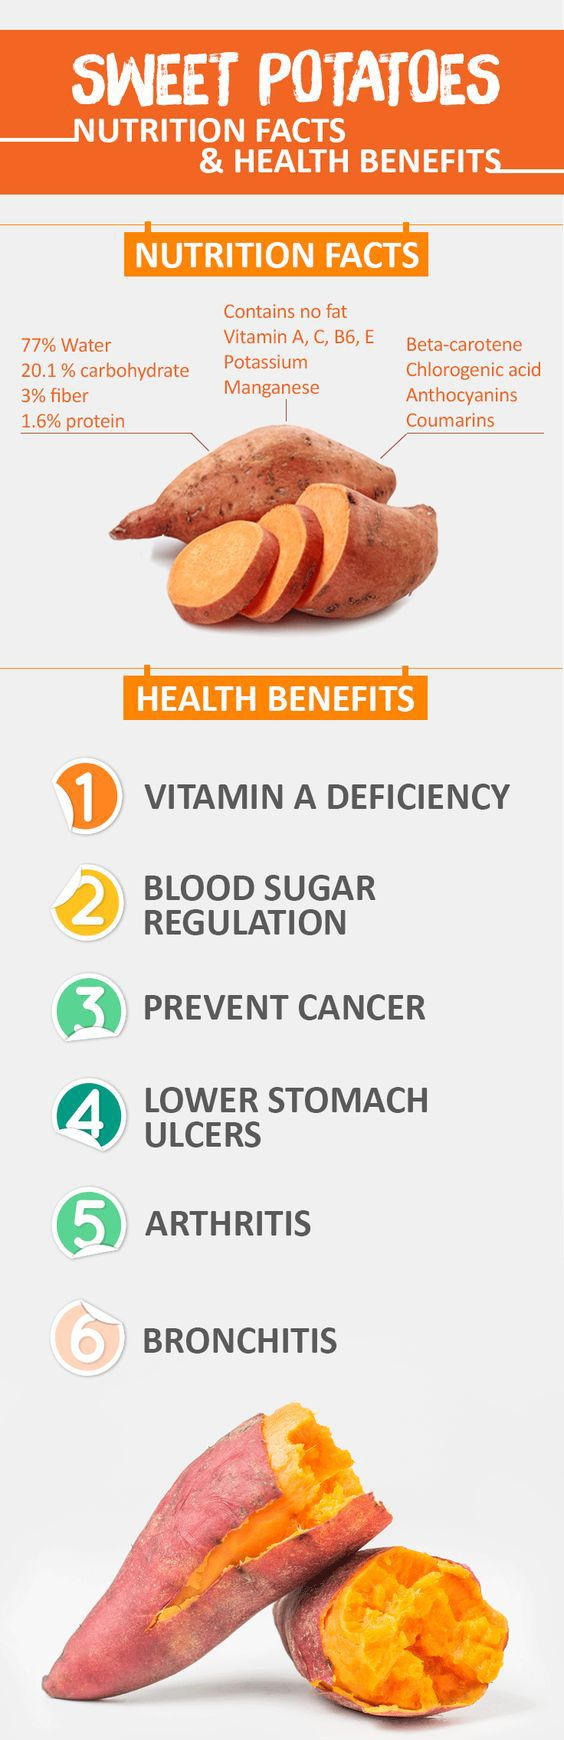 Sweet Potatoes: Nutrition Facts and Health Benefits – Lifee Too